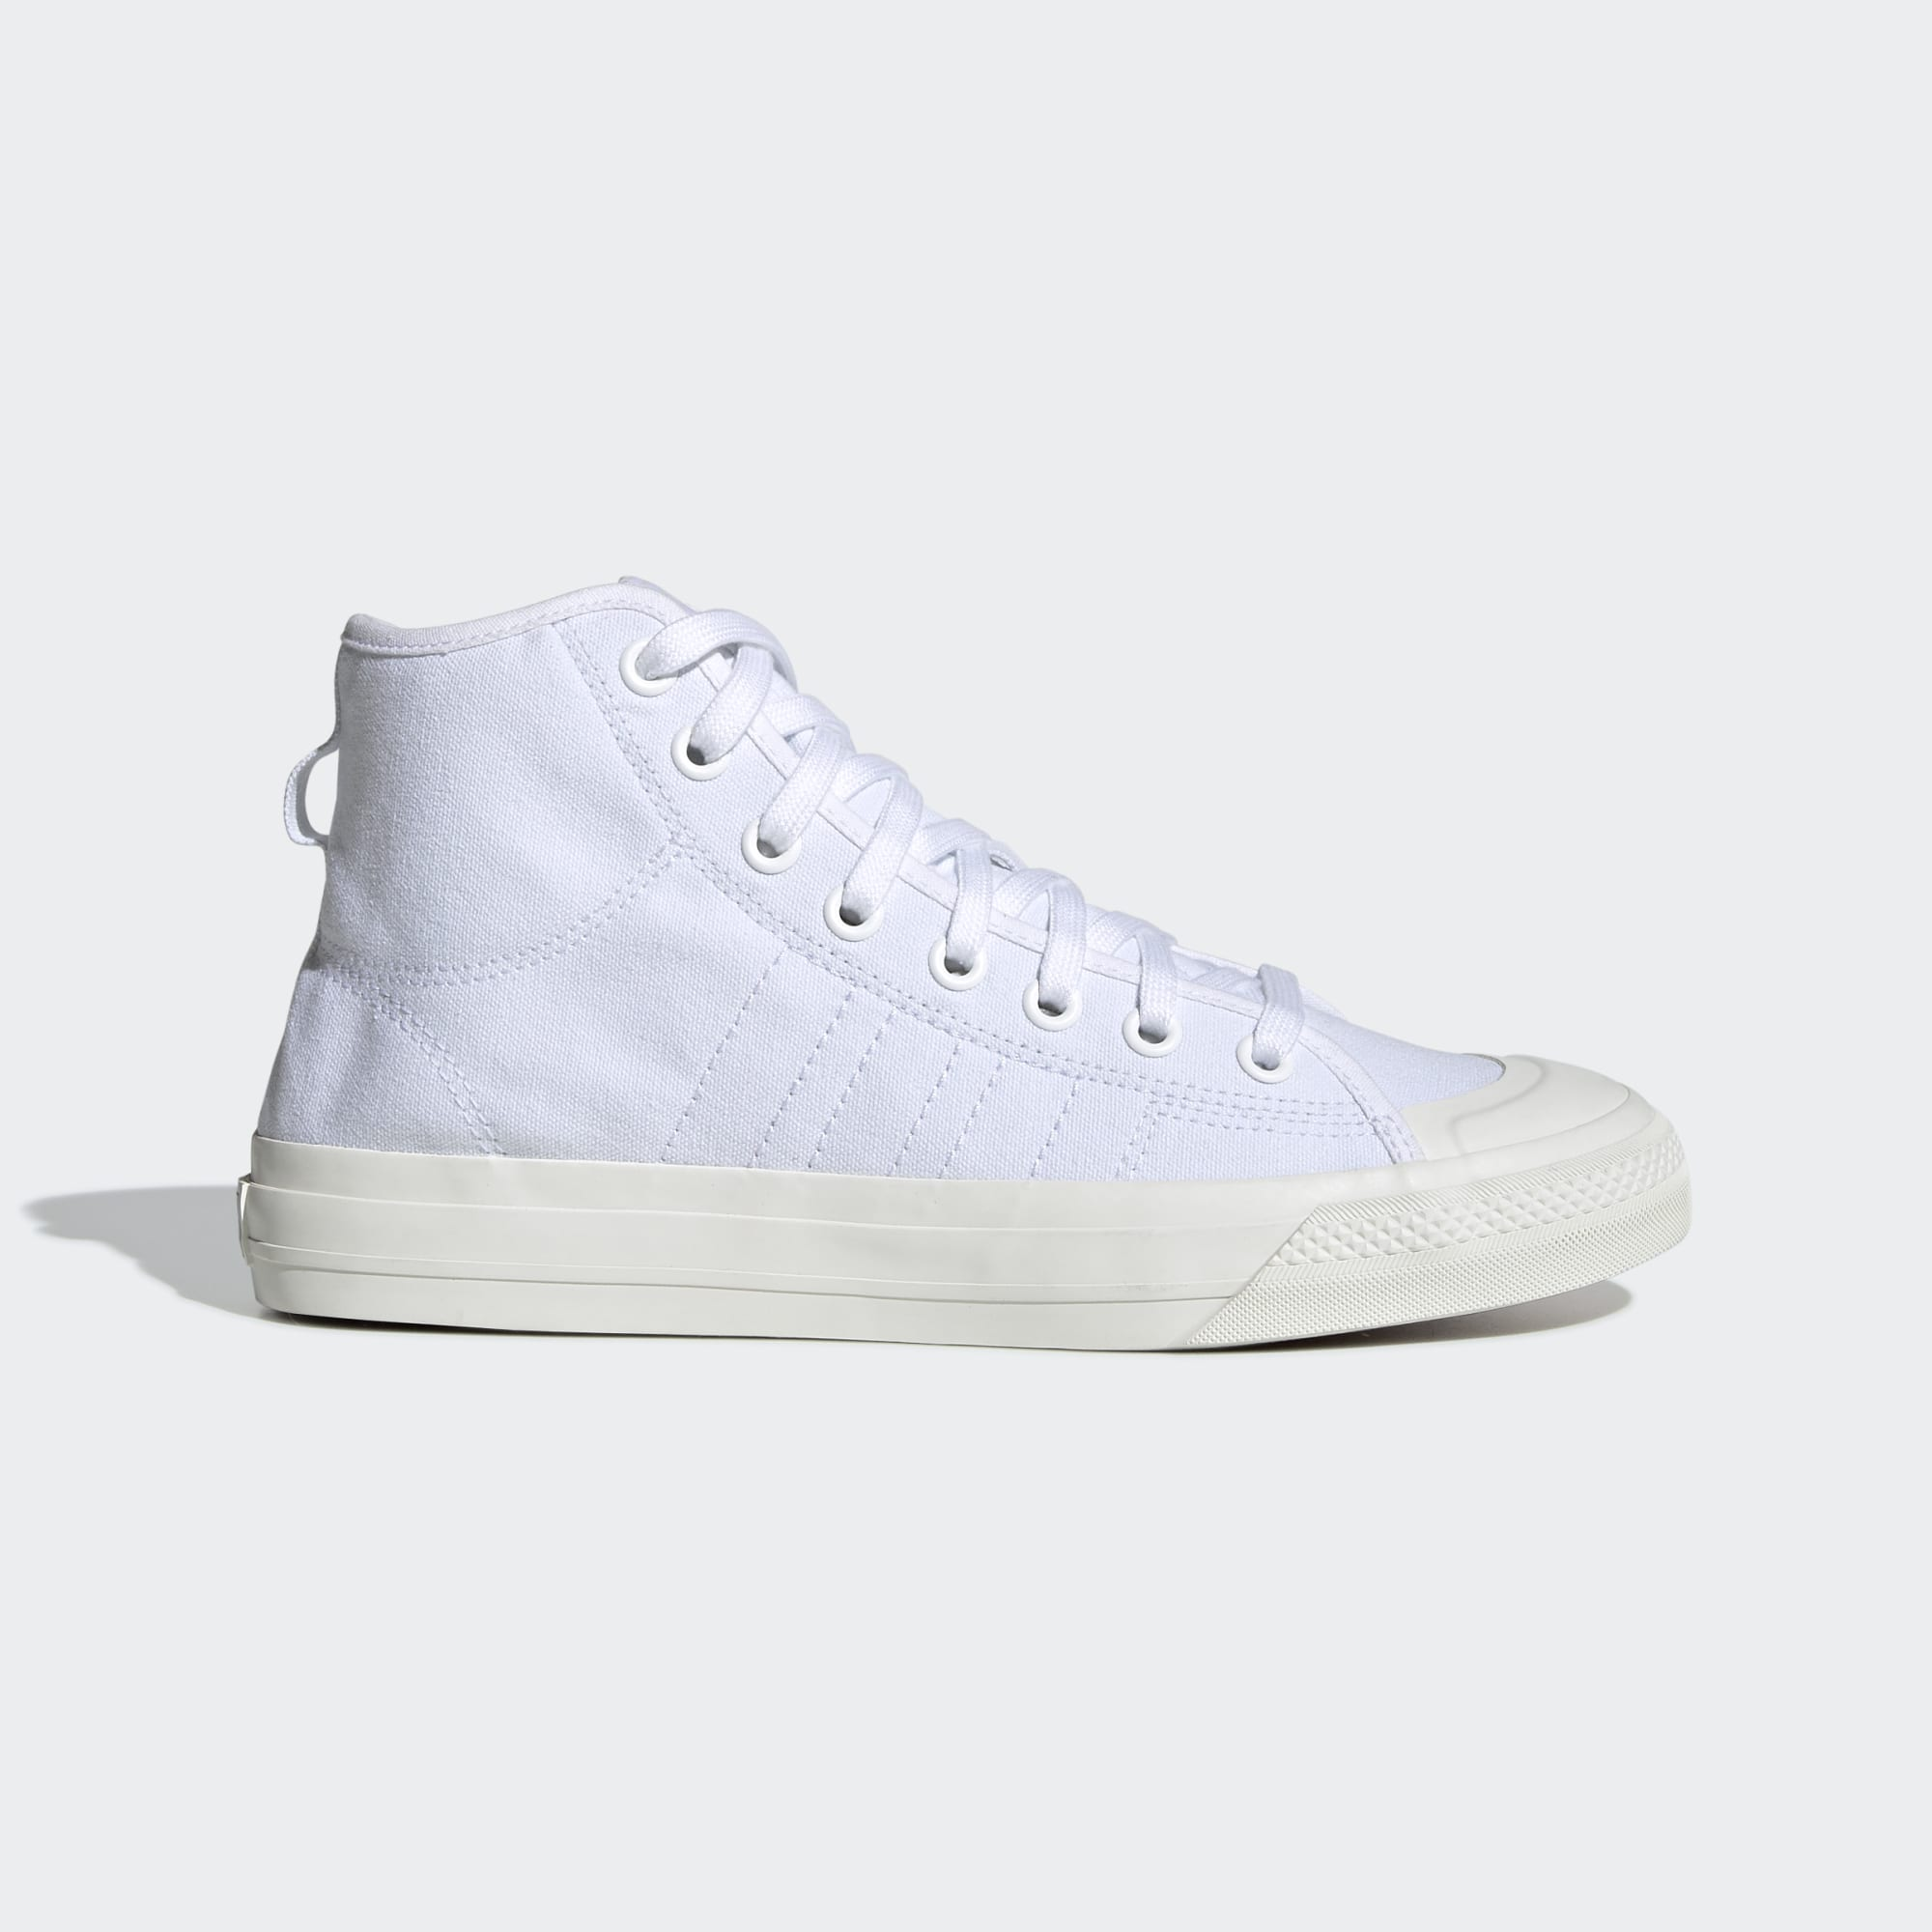 ADIDAS M'S FOOTWEAR NIZZA HI RF - CLOUD WHITE